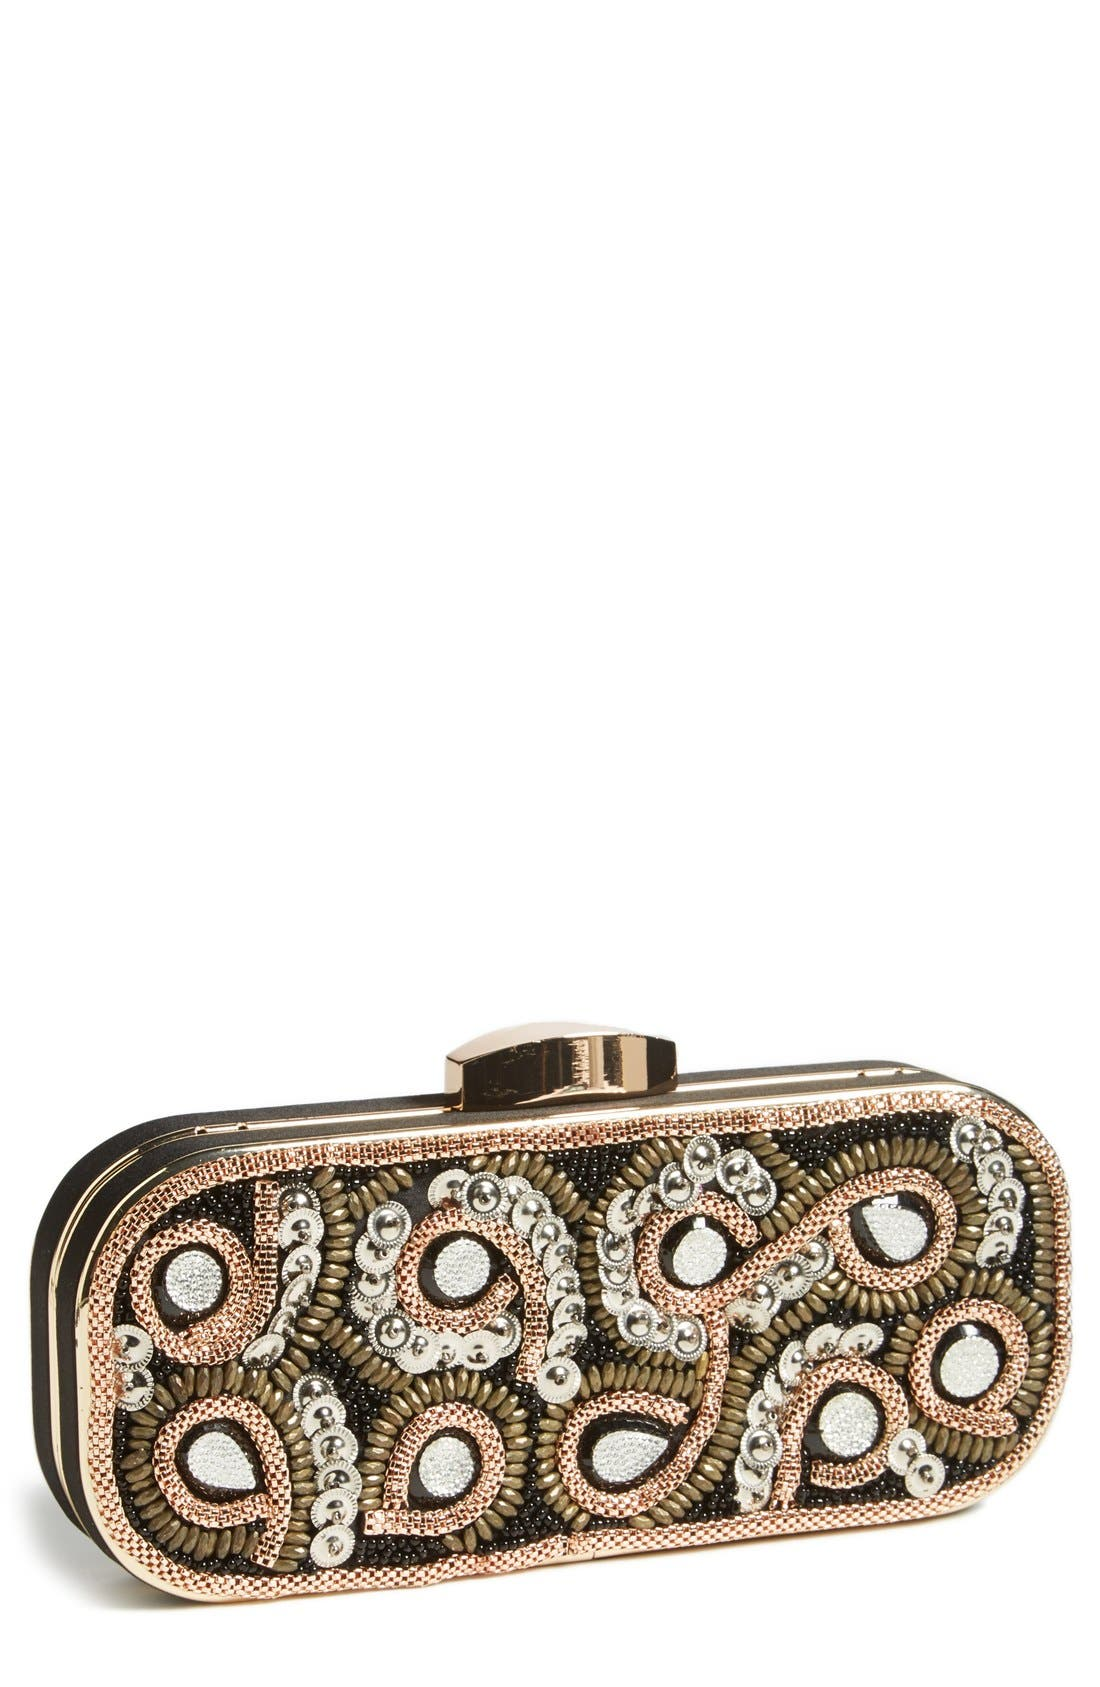 Alternate Image 1 Selected - Natasha Couture Chain Swirl Clutch